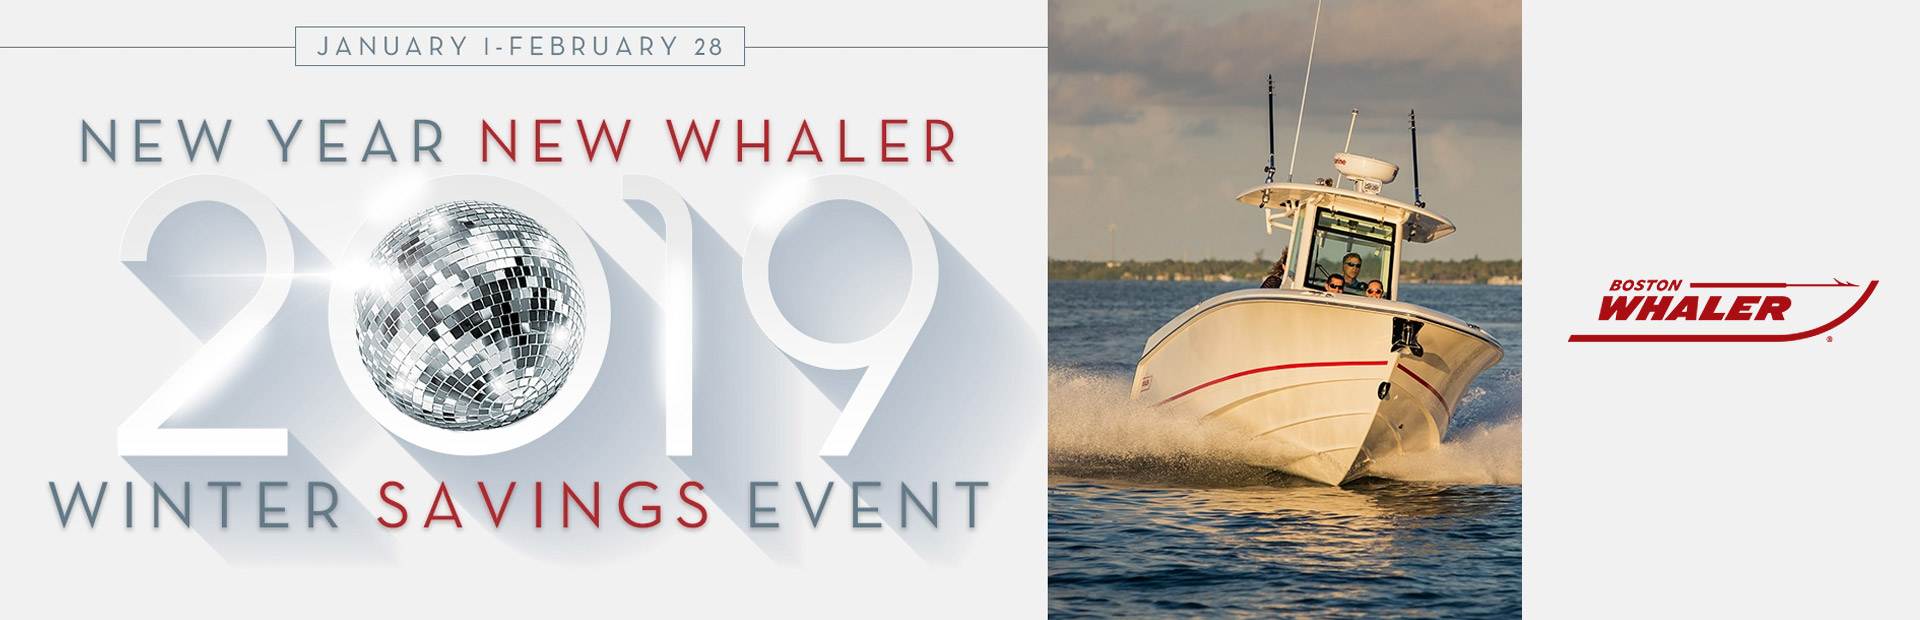 Boston Whaler: New Year New Whaler